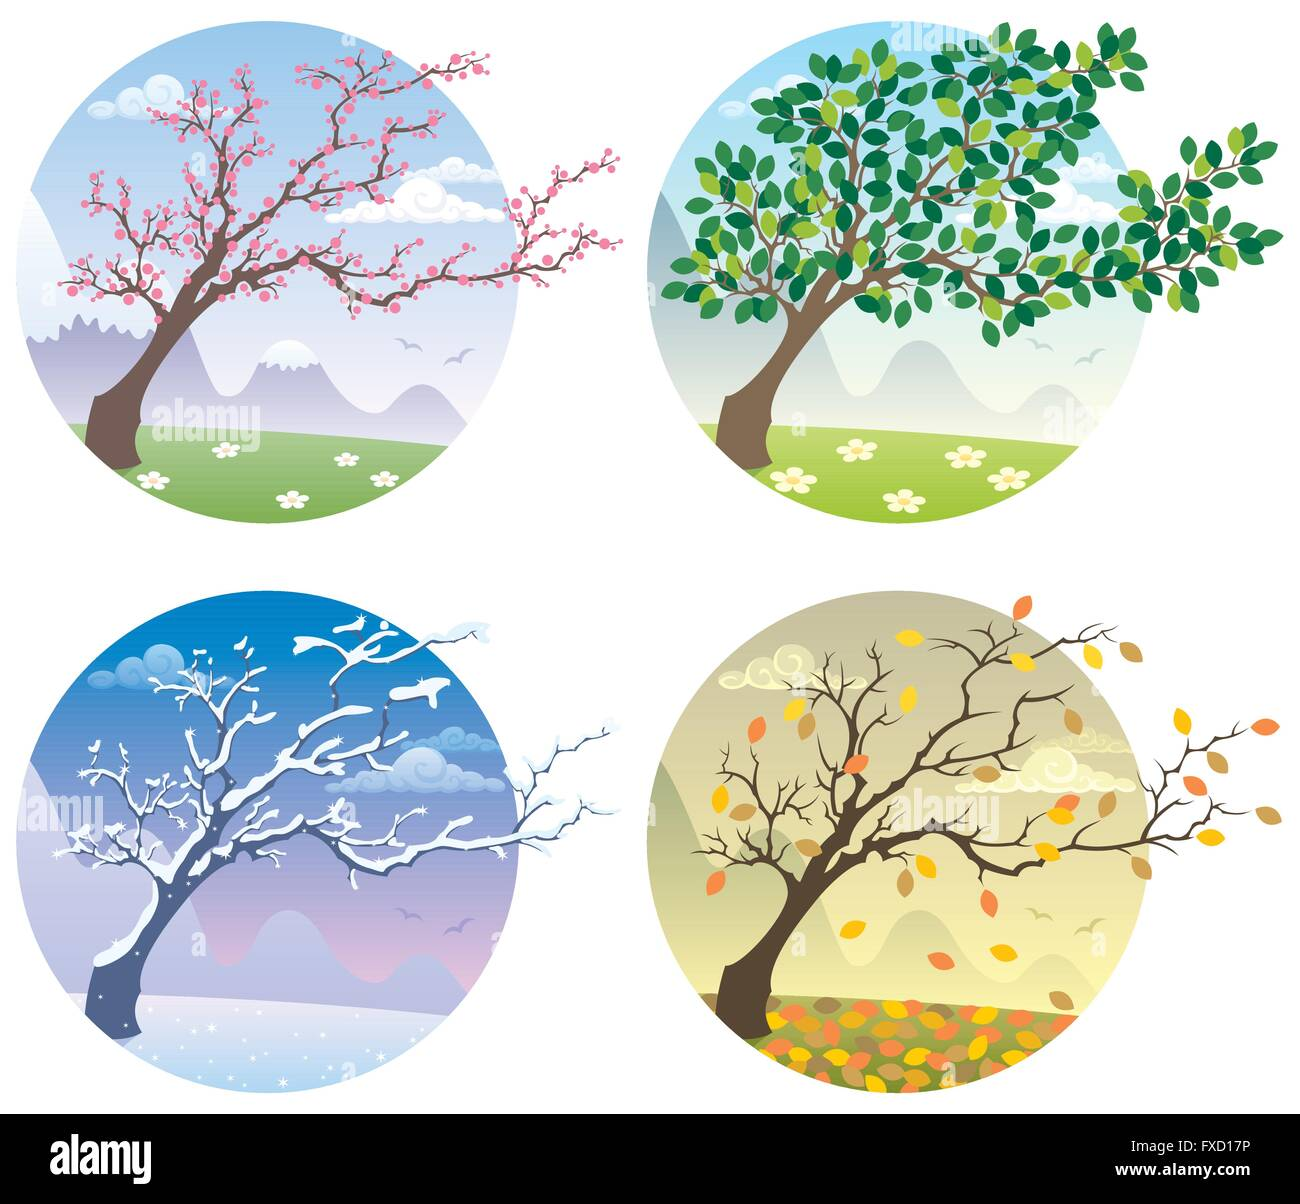 Cartoon Illustration Of A Tree During The Four Seasons